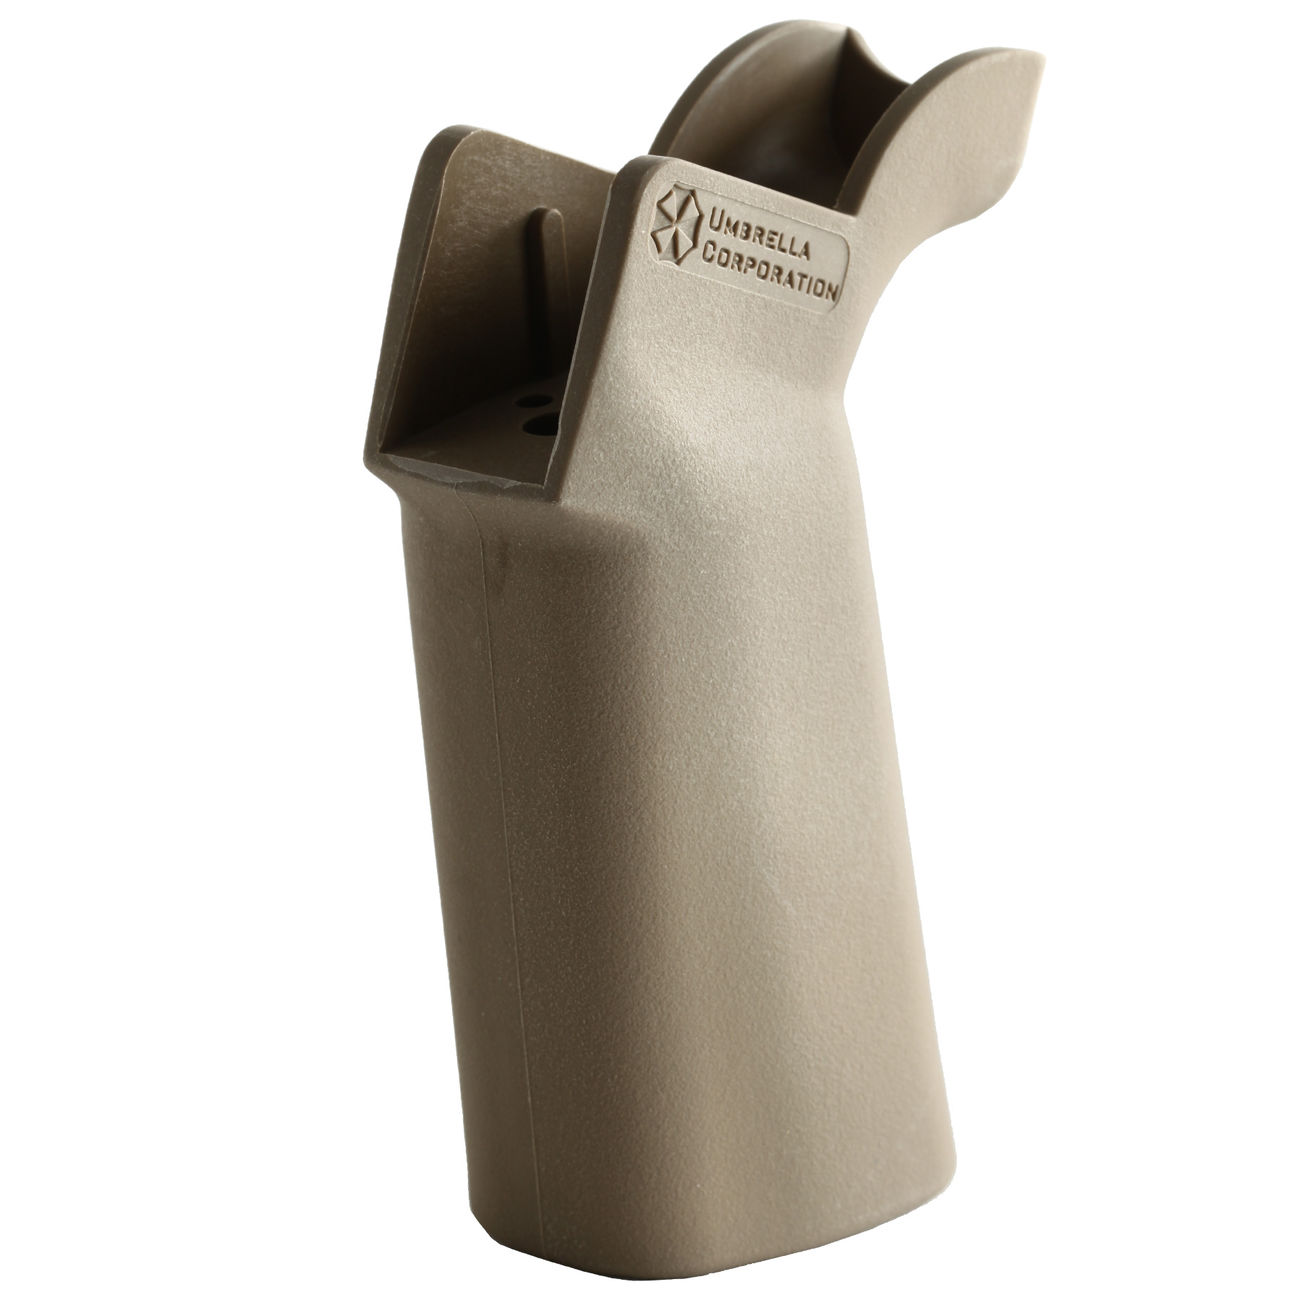 MadBull / Umbrella Corporation M4 / M16 Pistol Grip 23 Griffstück FDE 0